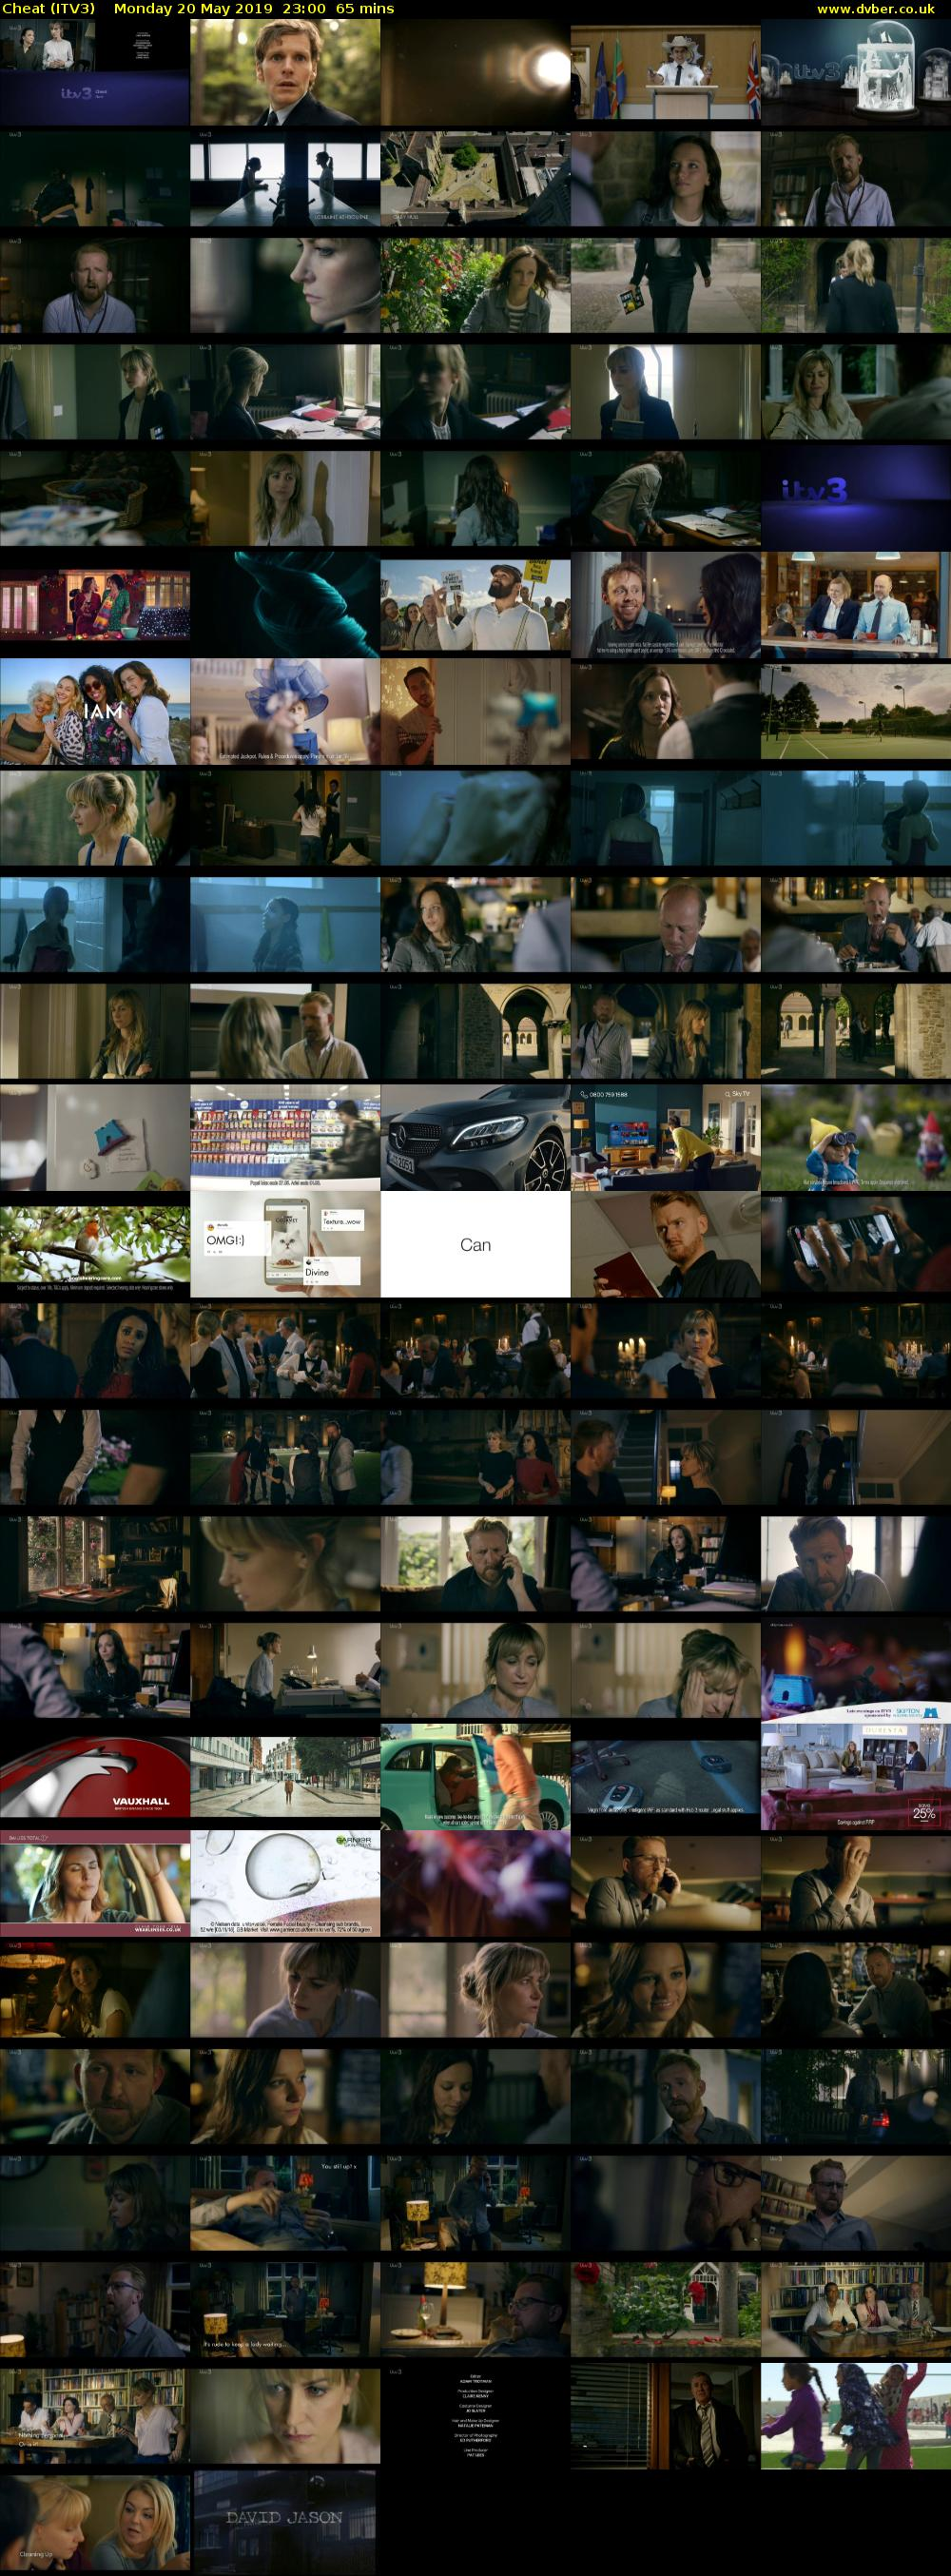 Cheat (ITV3) Monday 20 May 2019 23:00 - 00:05